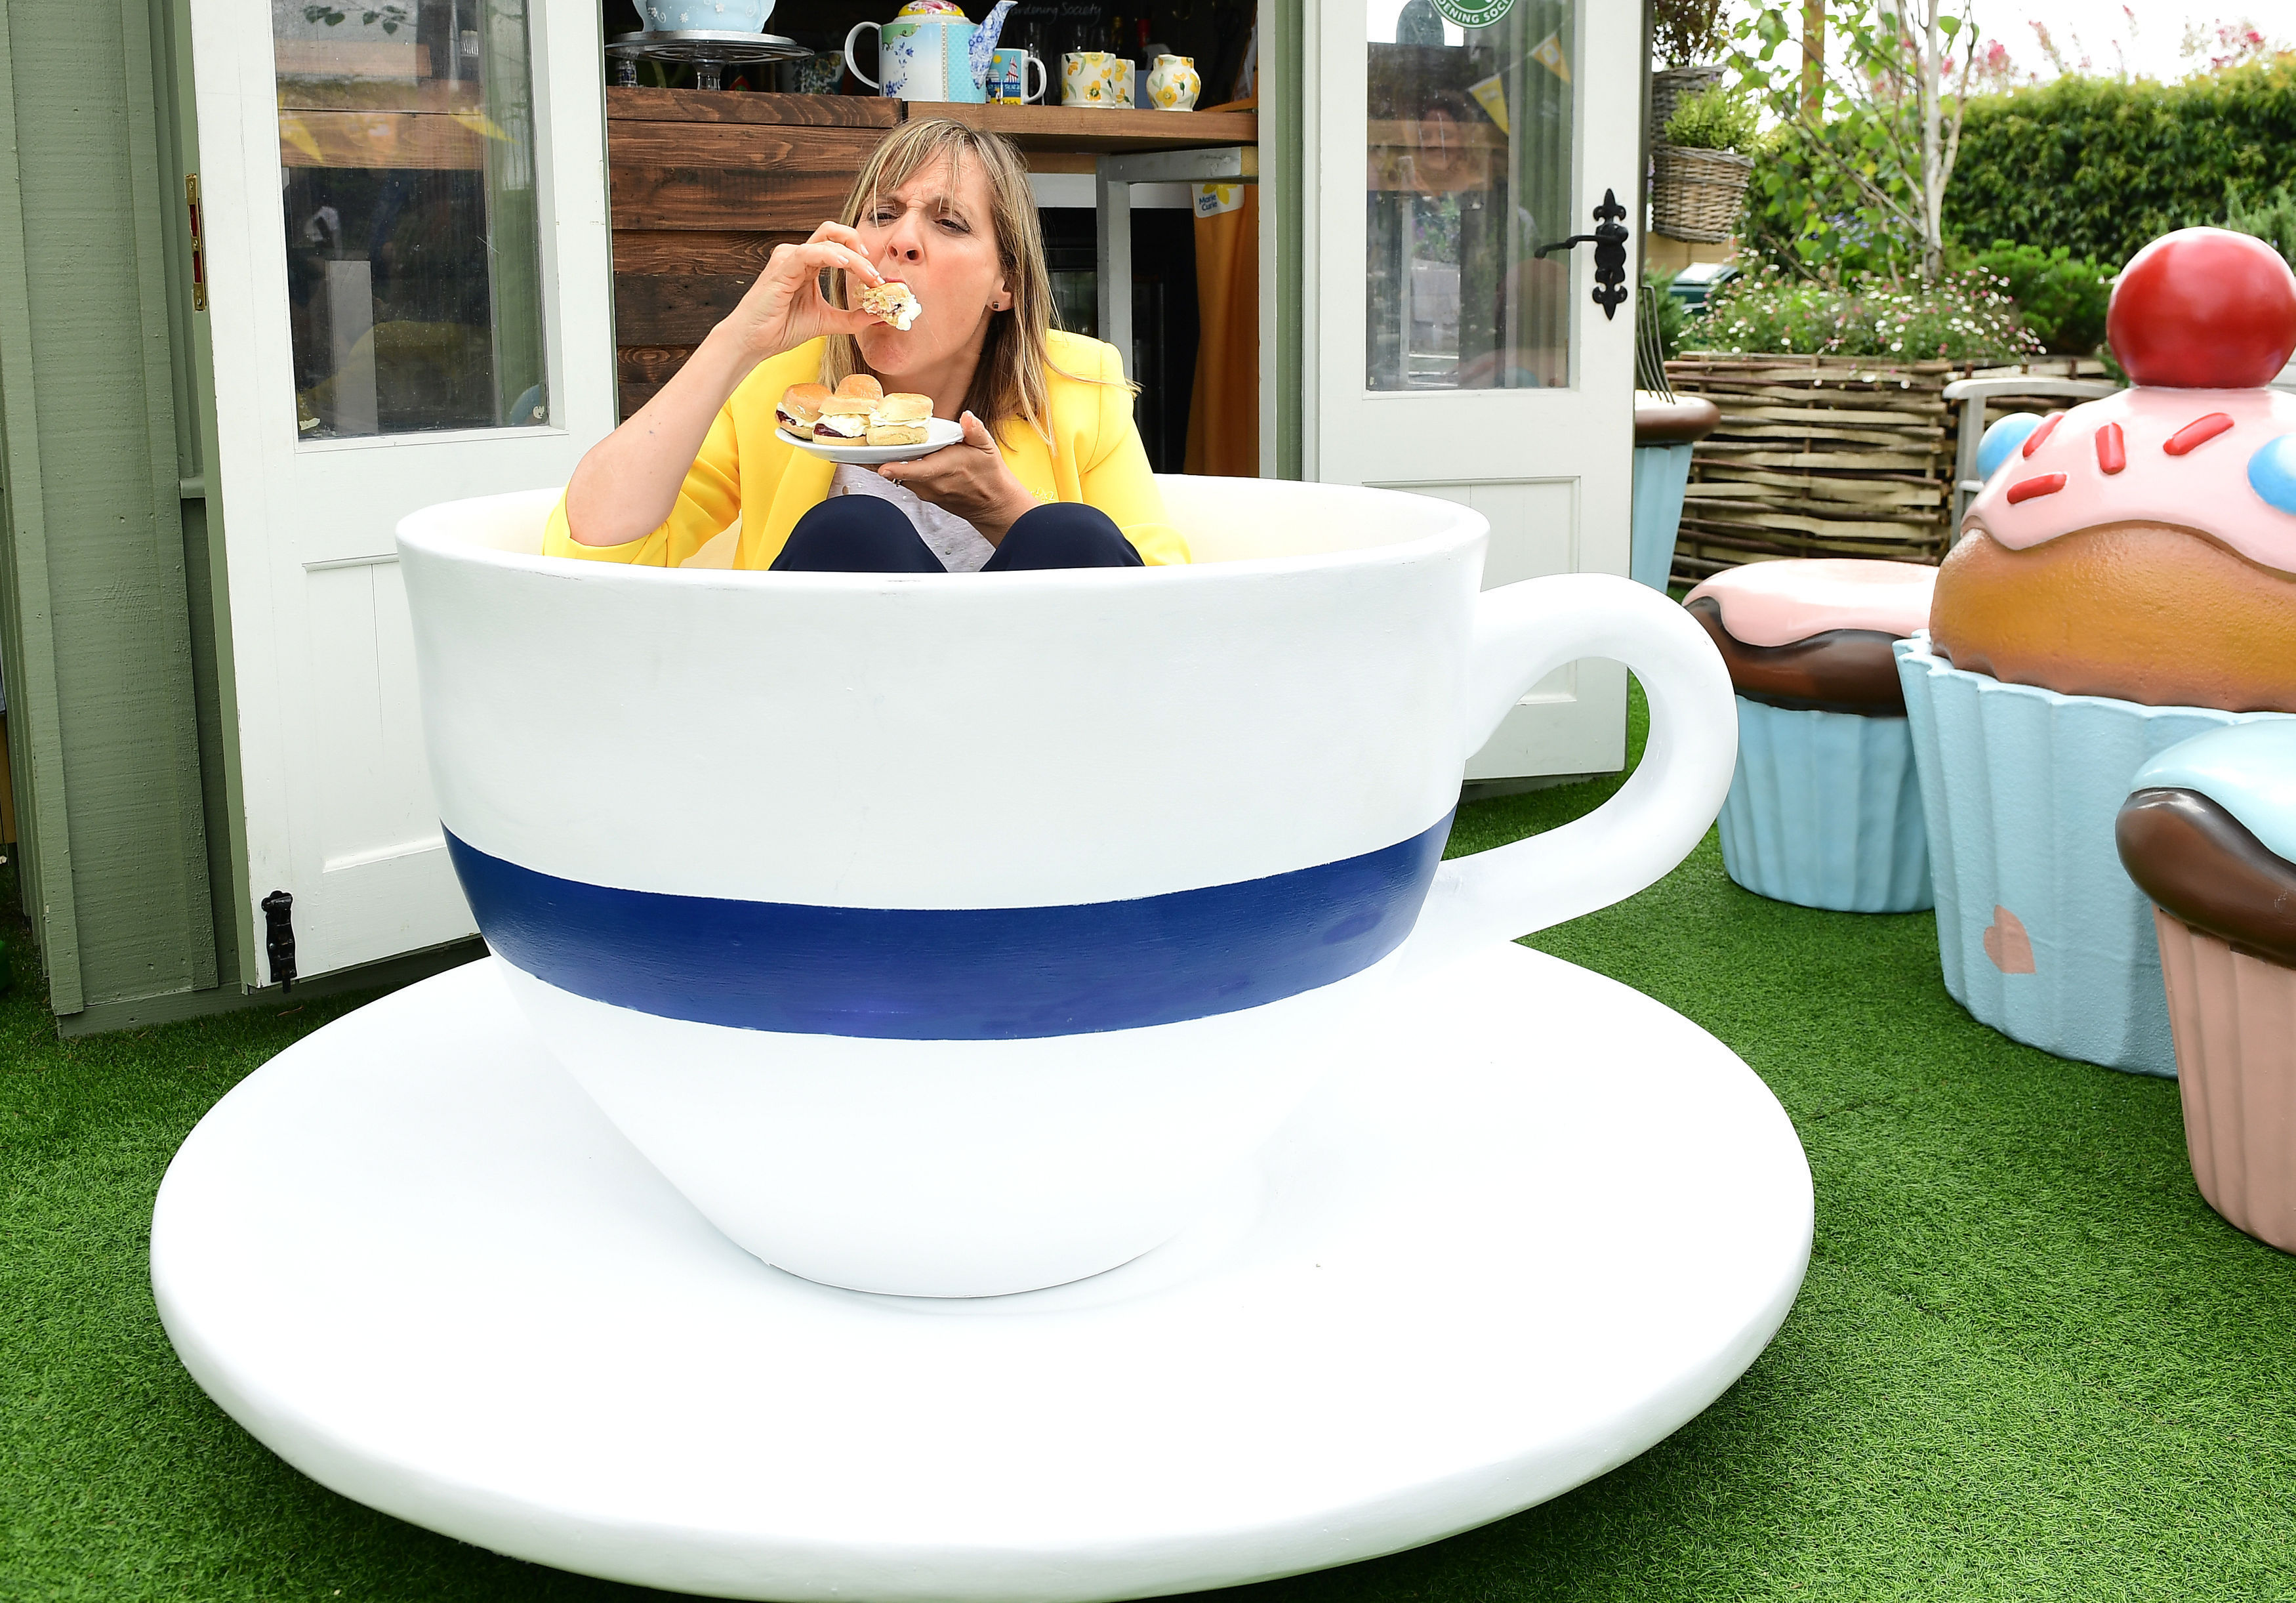 Mel Giedroyc launches the Marie Curie Blooming Great Tea Party fundraiser (Ian West/PA)